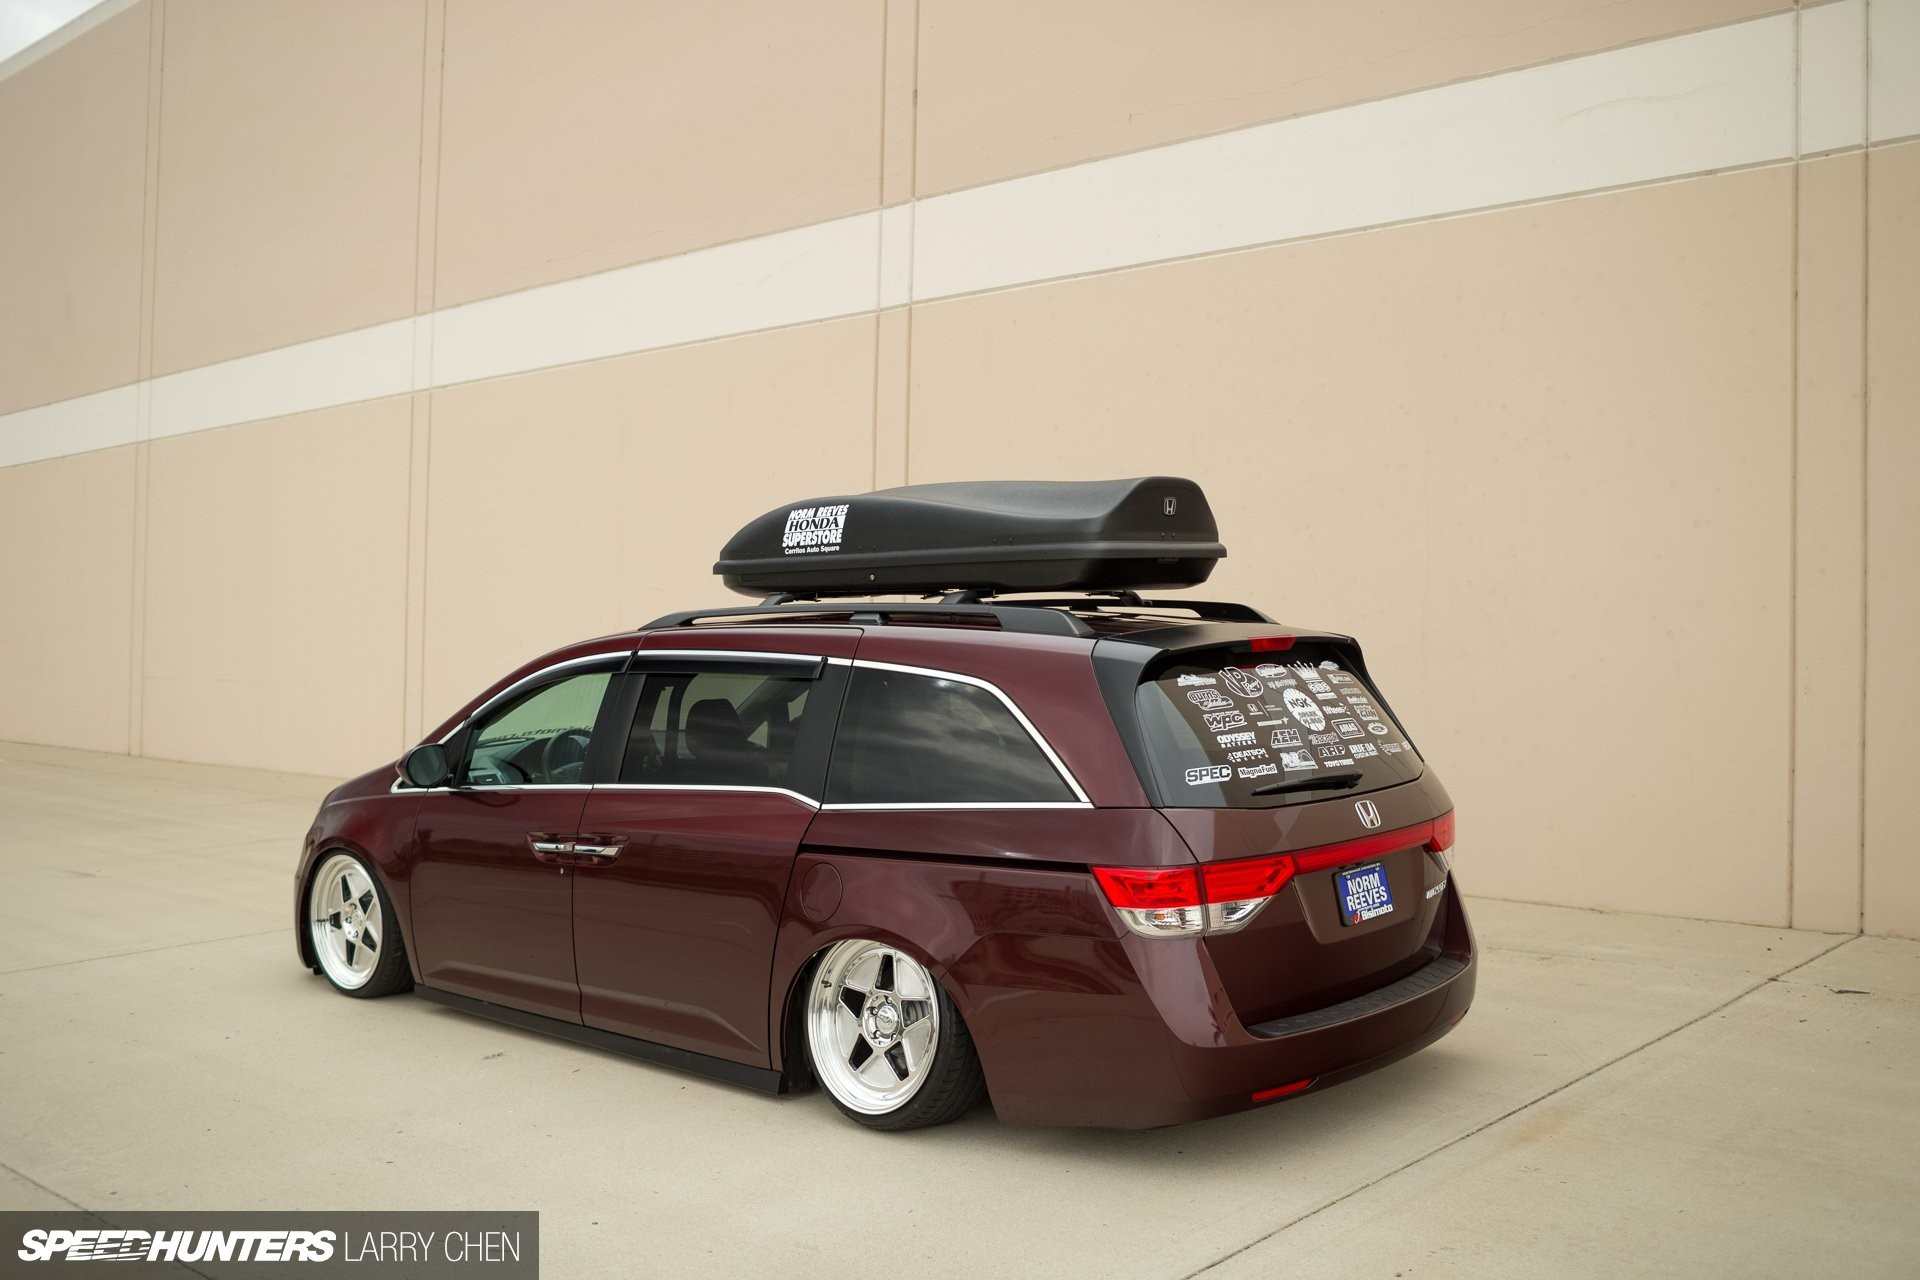 1920x1280 Honda Odyssey minivan van hot rod rods tuning lowrider 1000HP h wallpaper  background